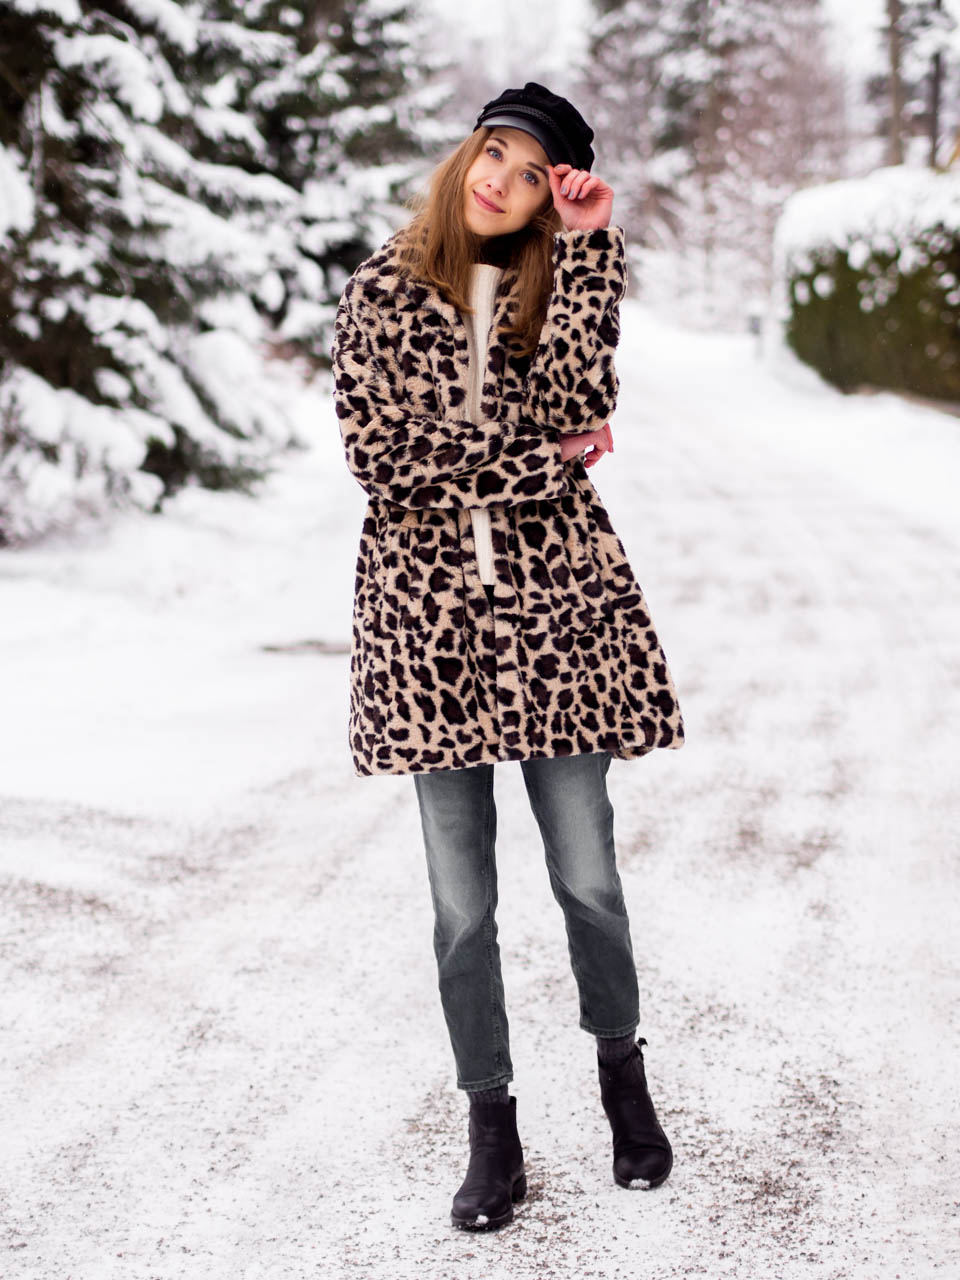 fashion-blogger-snow-outfit-inspiration